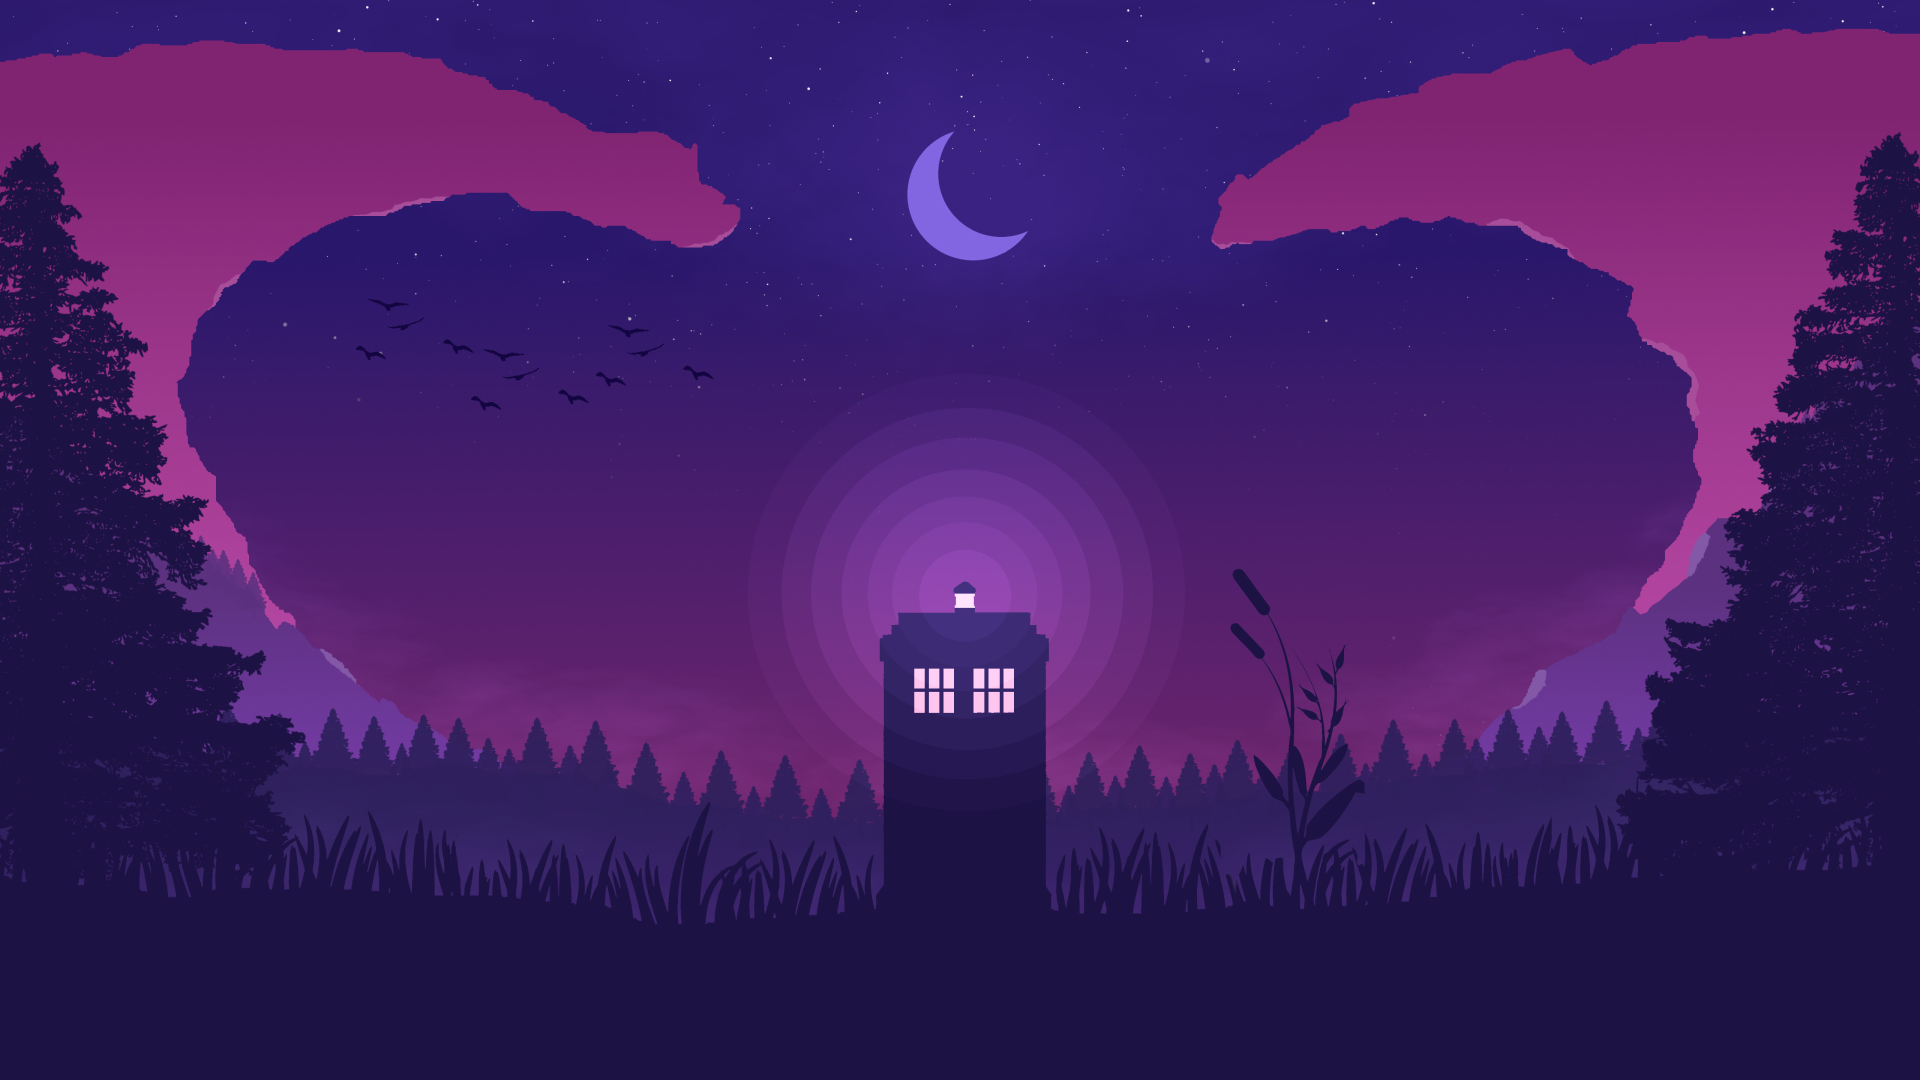 1920x1080 Doctor Who Minimal Art 1080p Laptop Full Hd Wallpaper